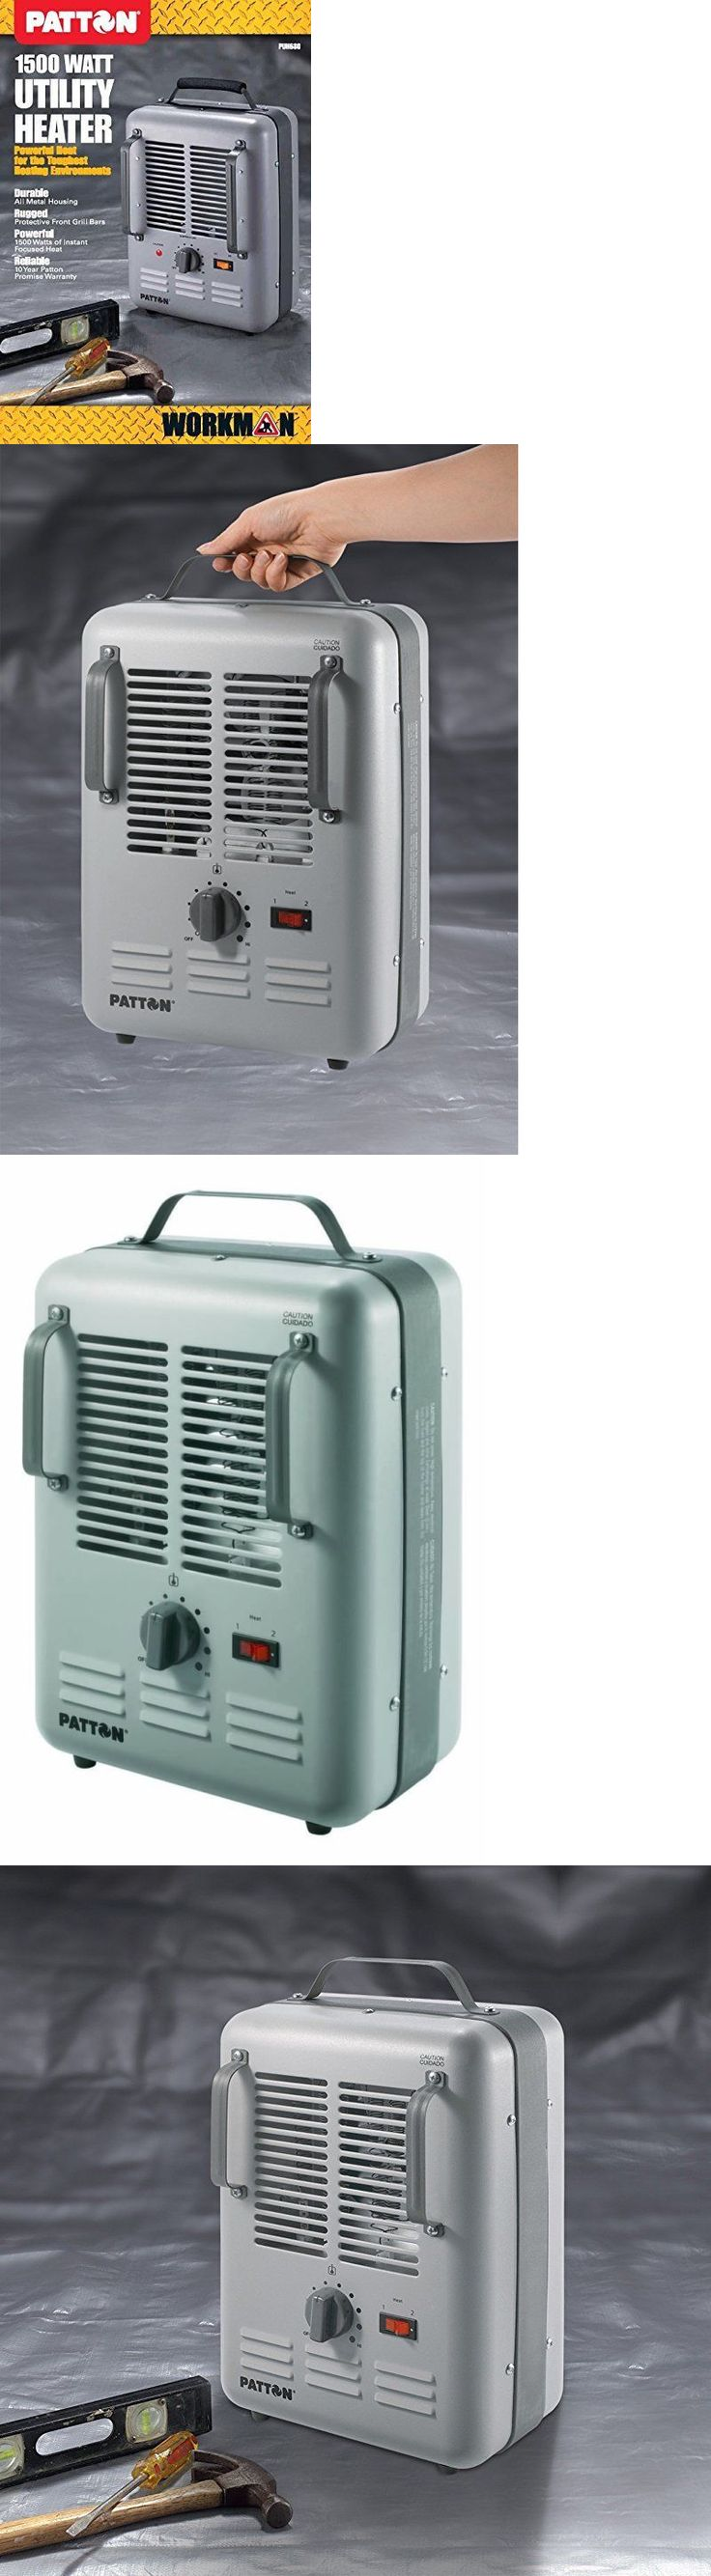 Space Heaters 20613: Greenhouse Electric Heater Automatic Thermostat Handle Portable Space Heat Safe -> BUY IT NOW ONLY: $32.35 on eBay!